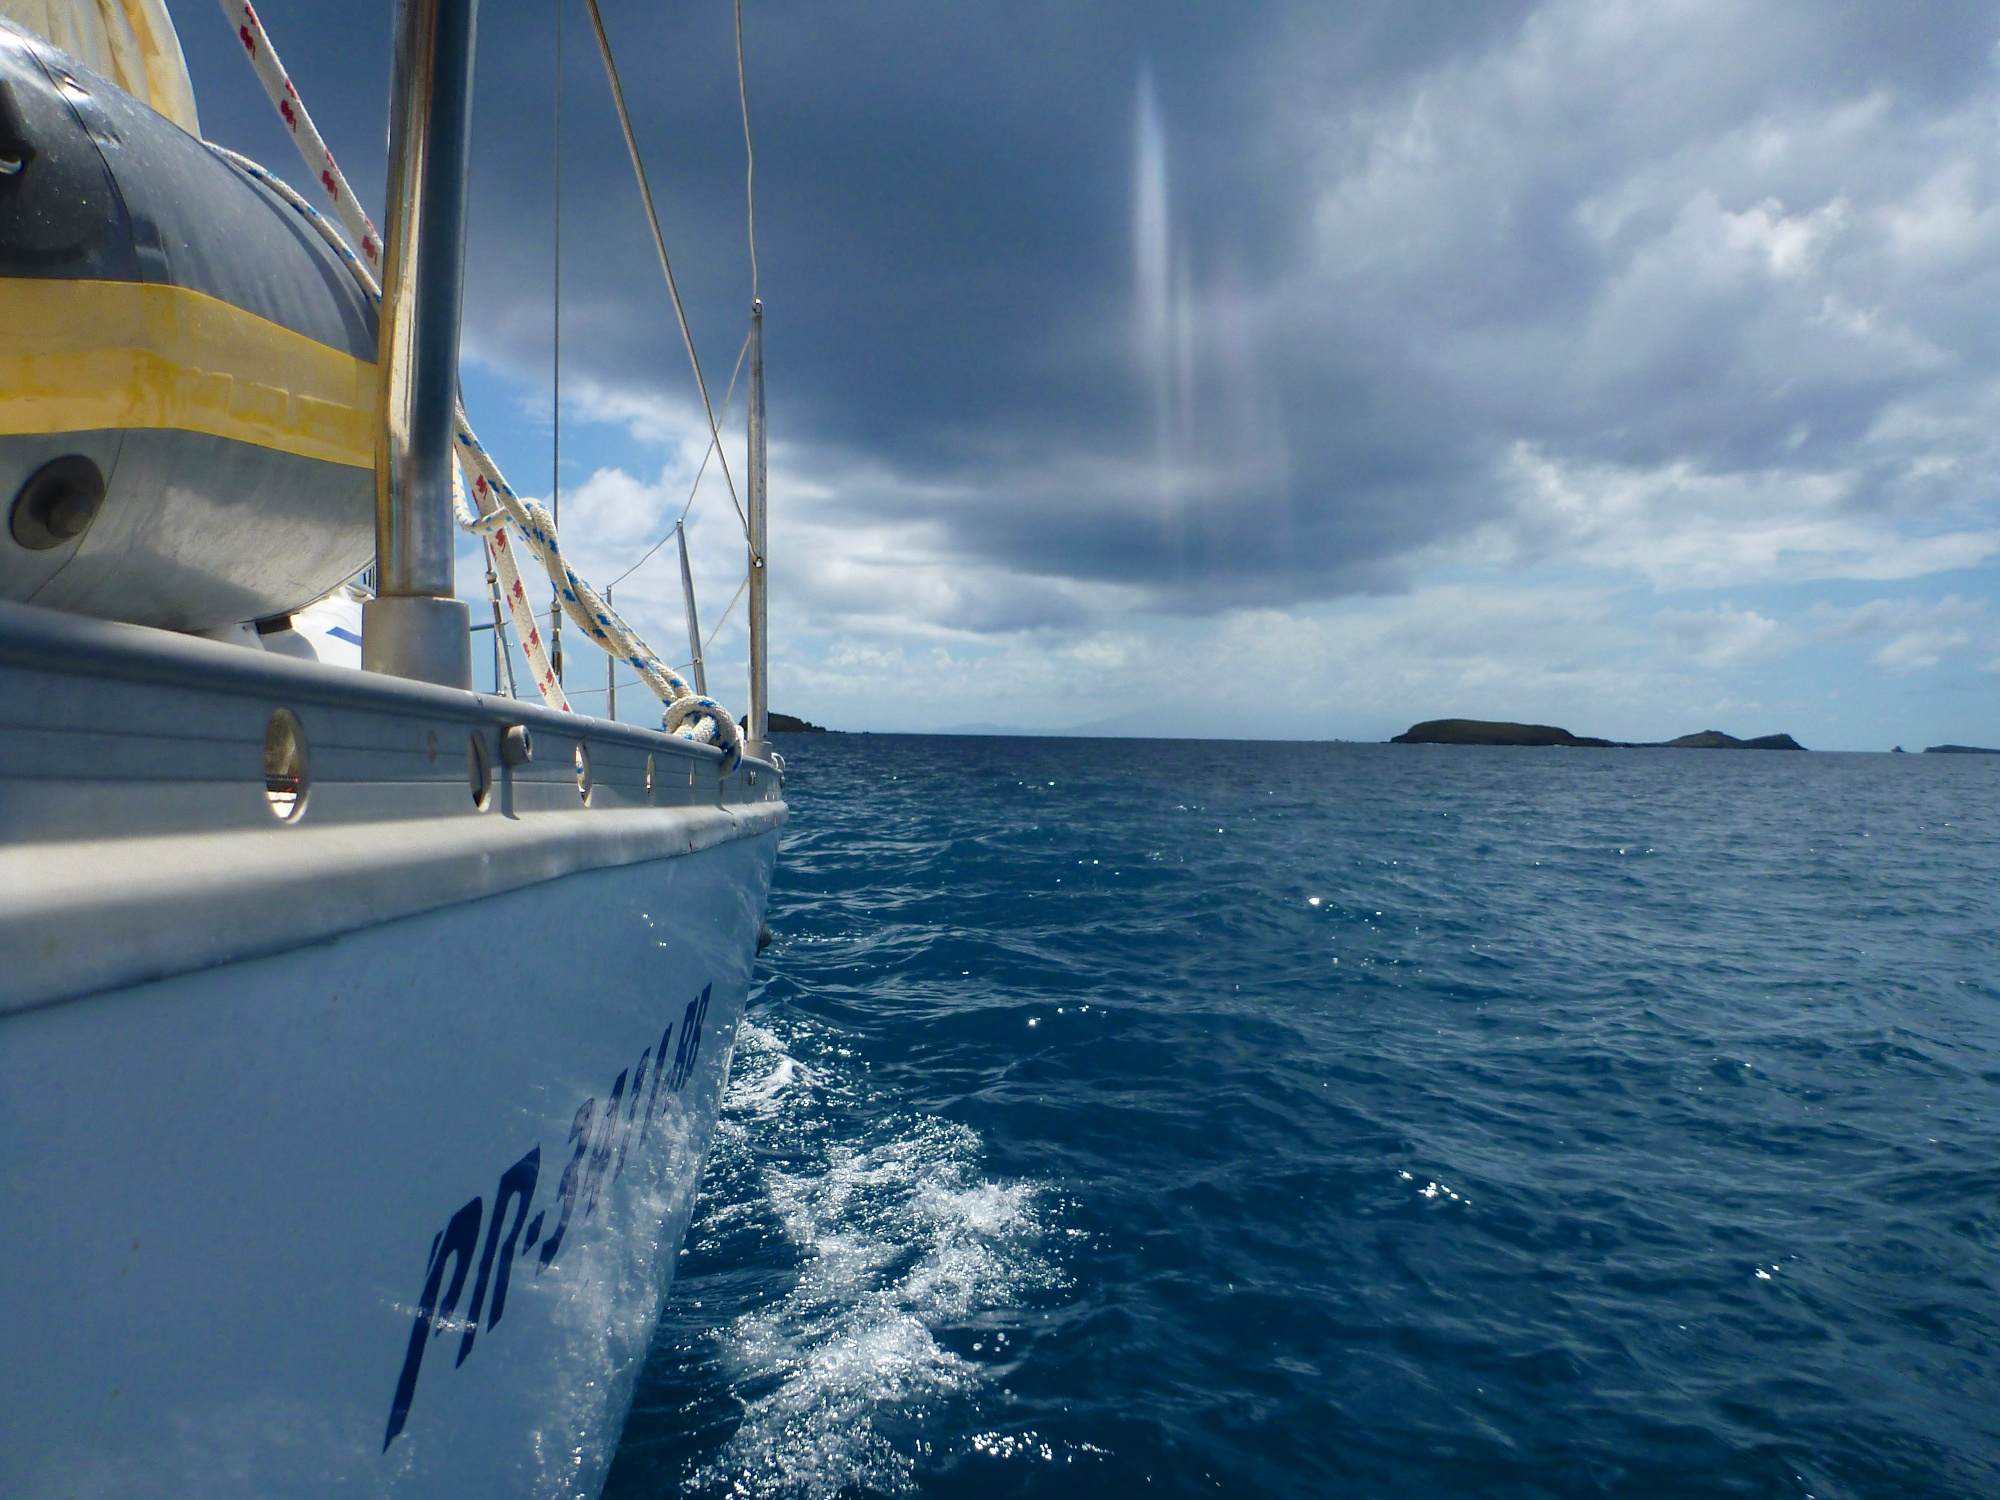 Rain off the Starboard.